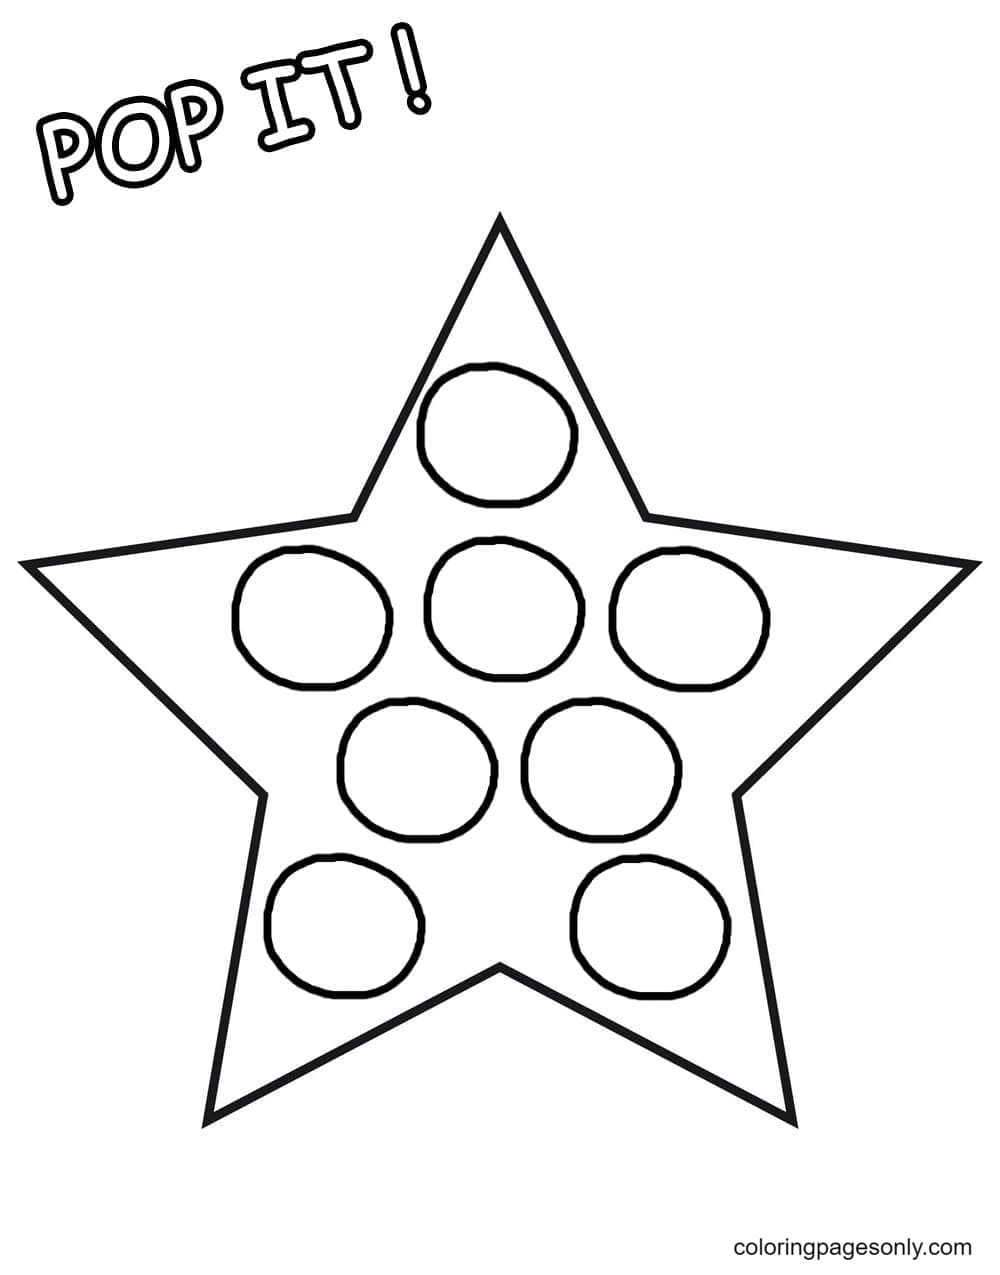 Star Pop It Coloring Page